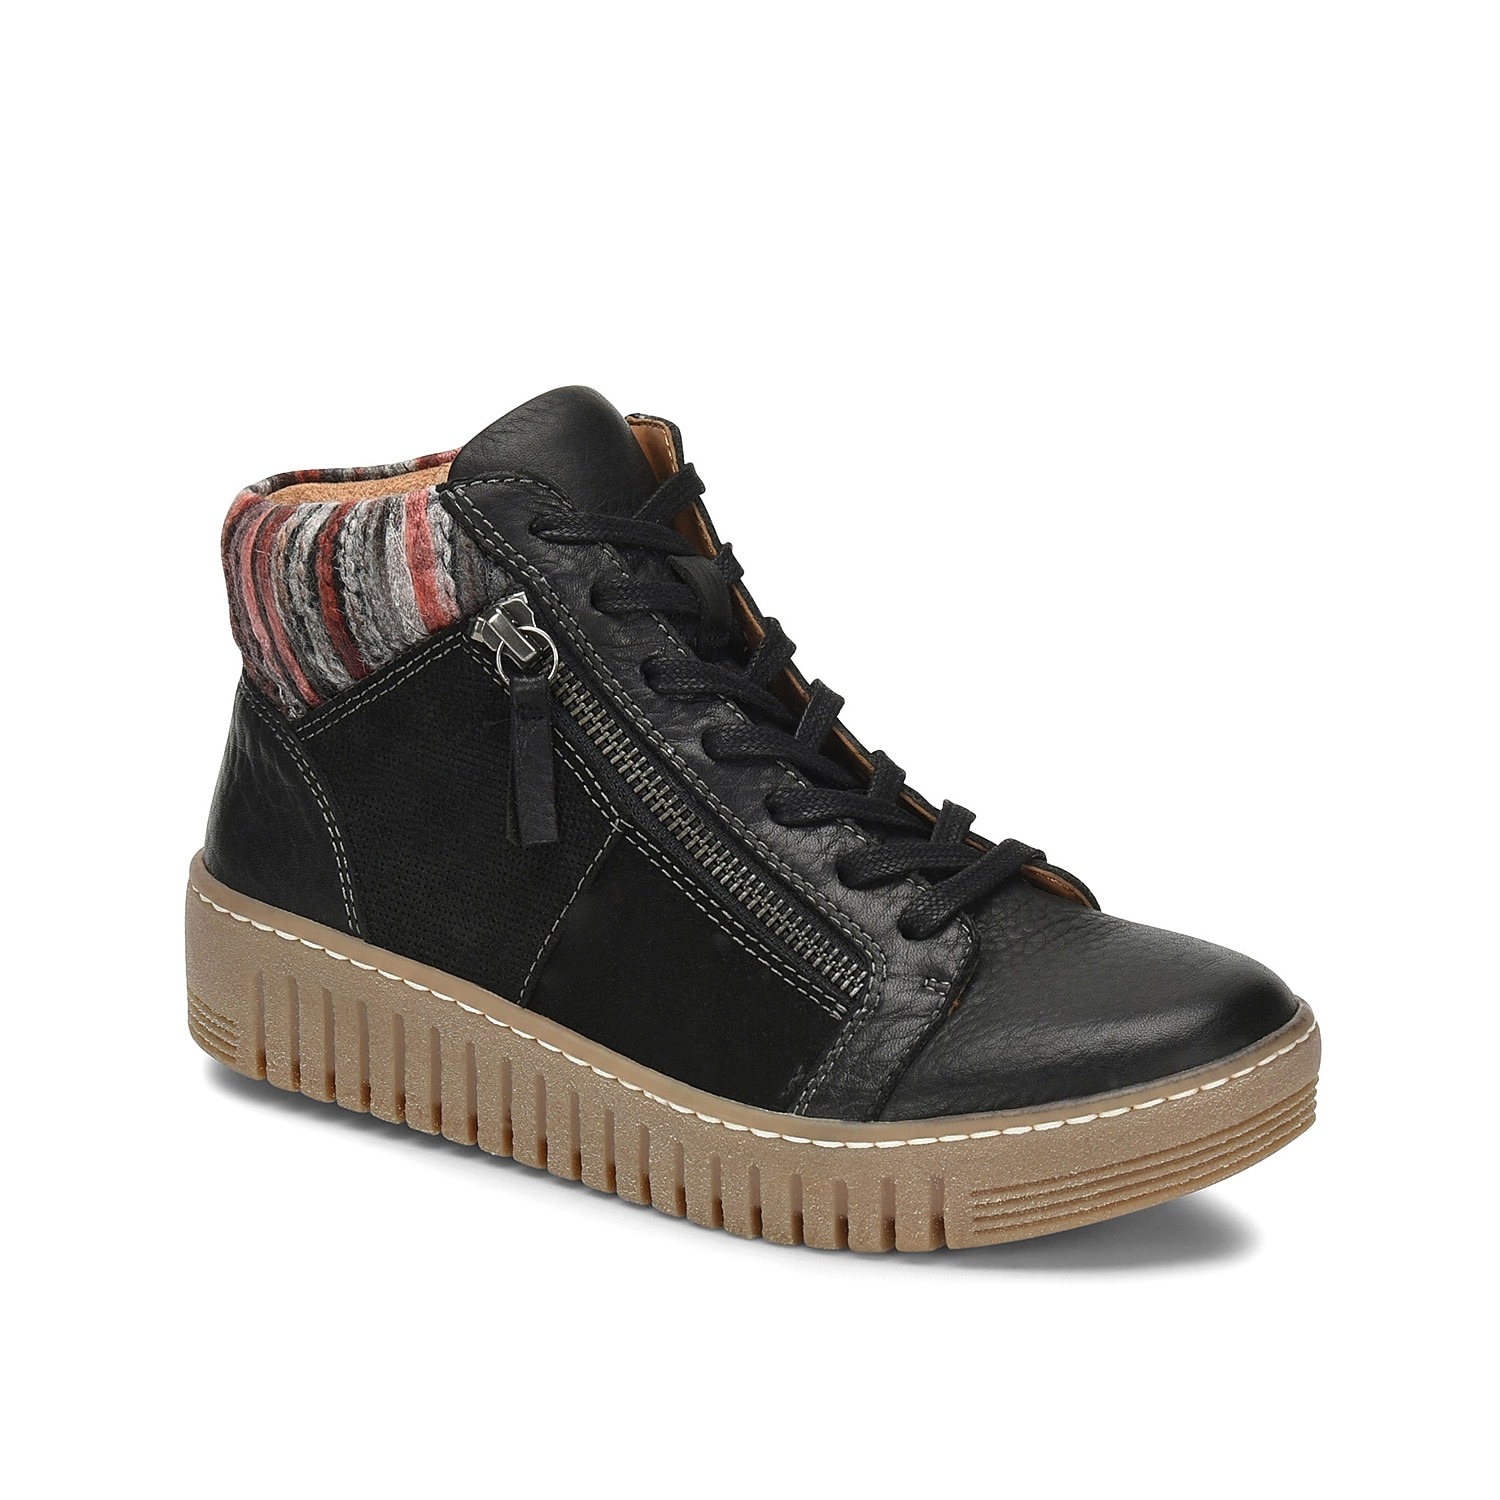 Kick back in the Halia mid-top sneaker from Comfortiva. This high-top pair features bootie-inspired design with a sweater-knit collar and a flexible sole for cushioned steps all throughout your day!